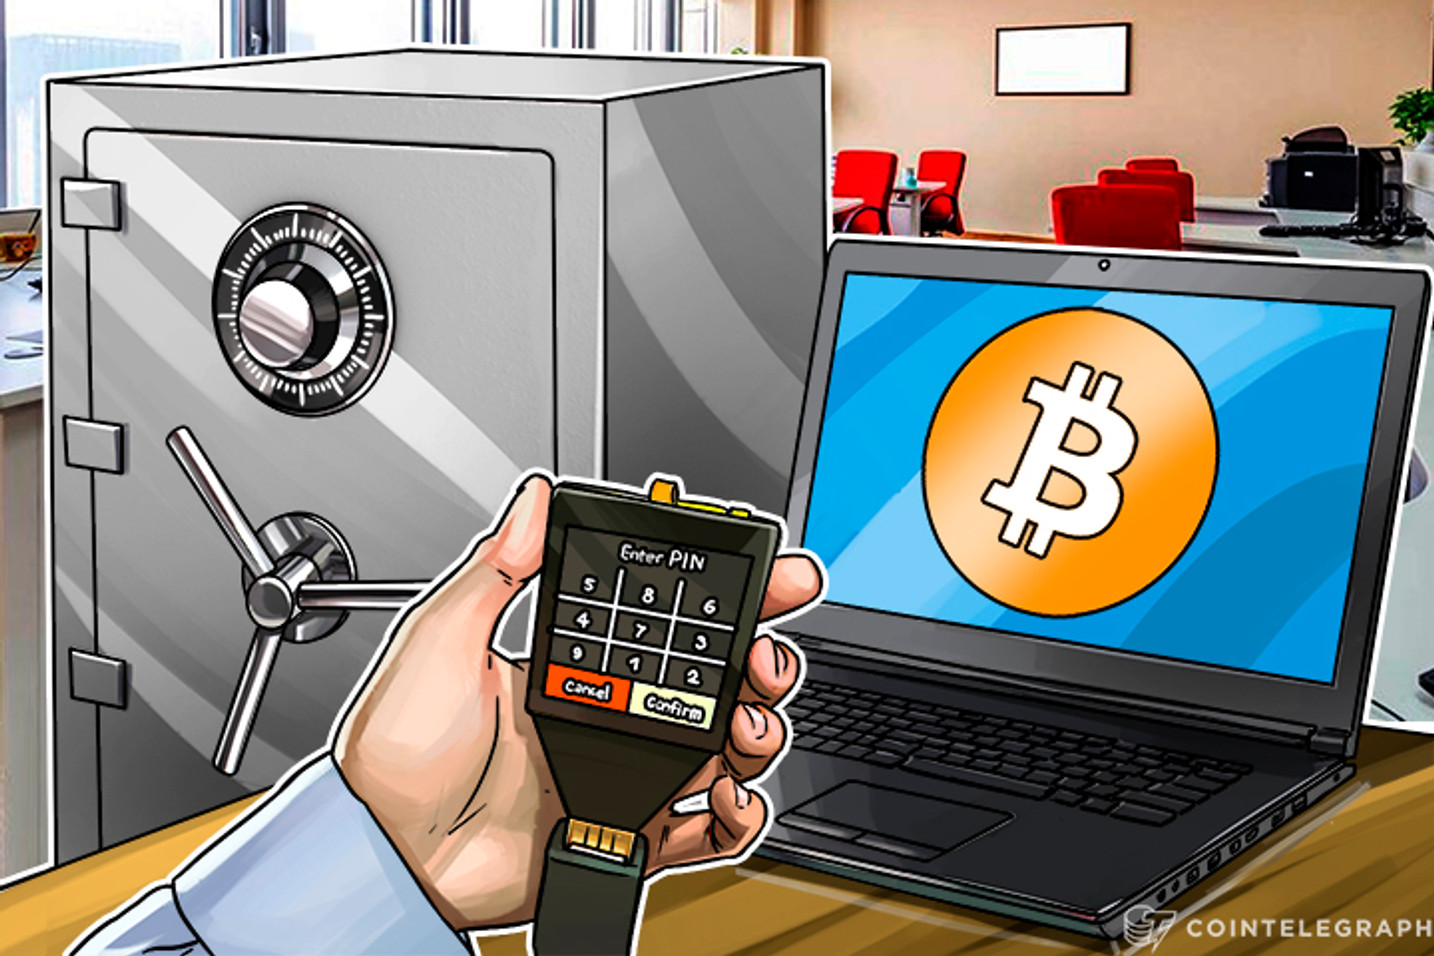 Trezor's New Hardware Wallet Looks For a Colorful Take on Bitcoin Security